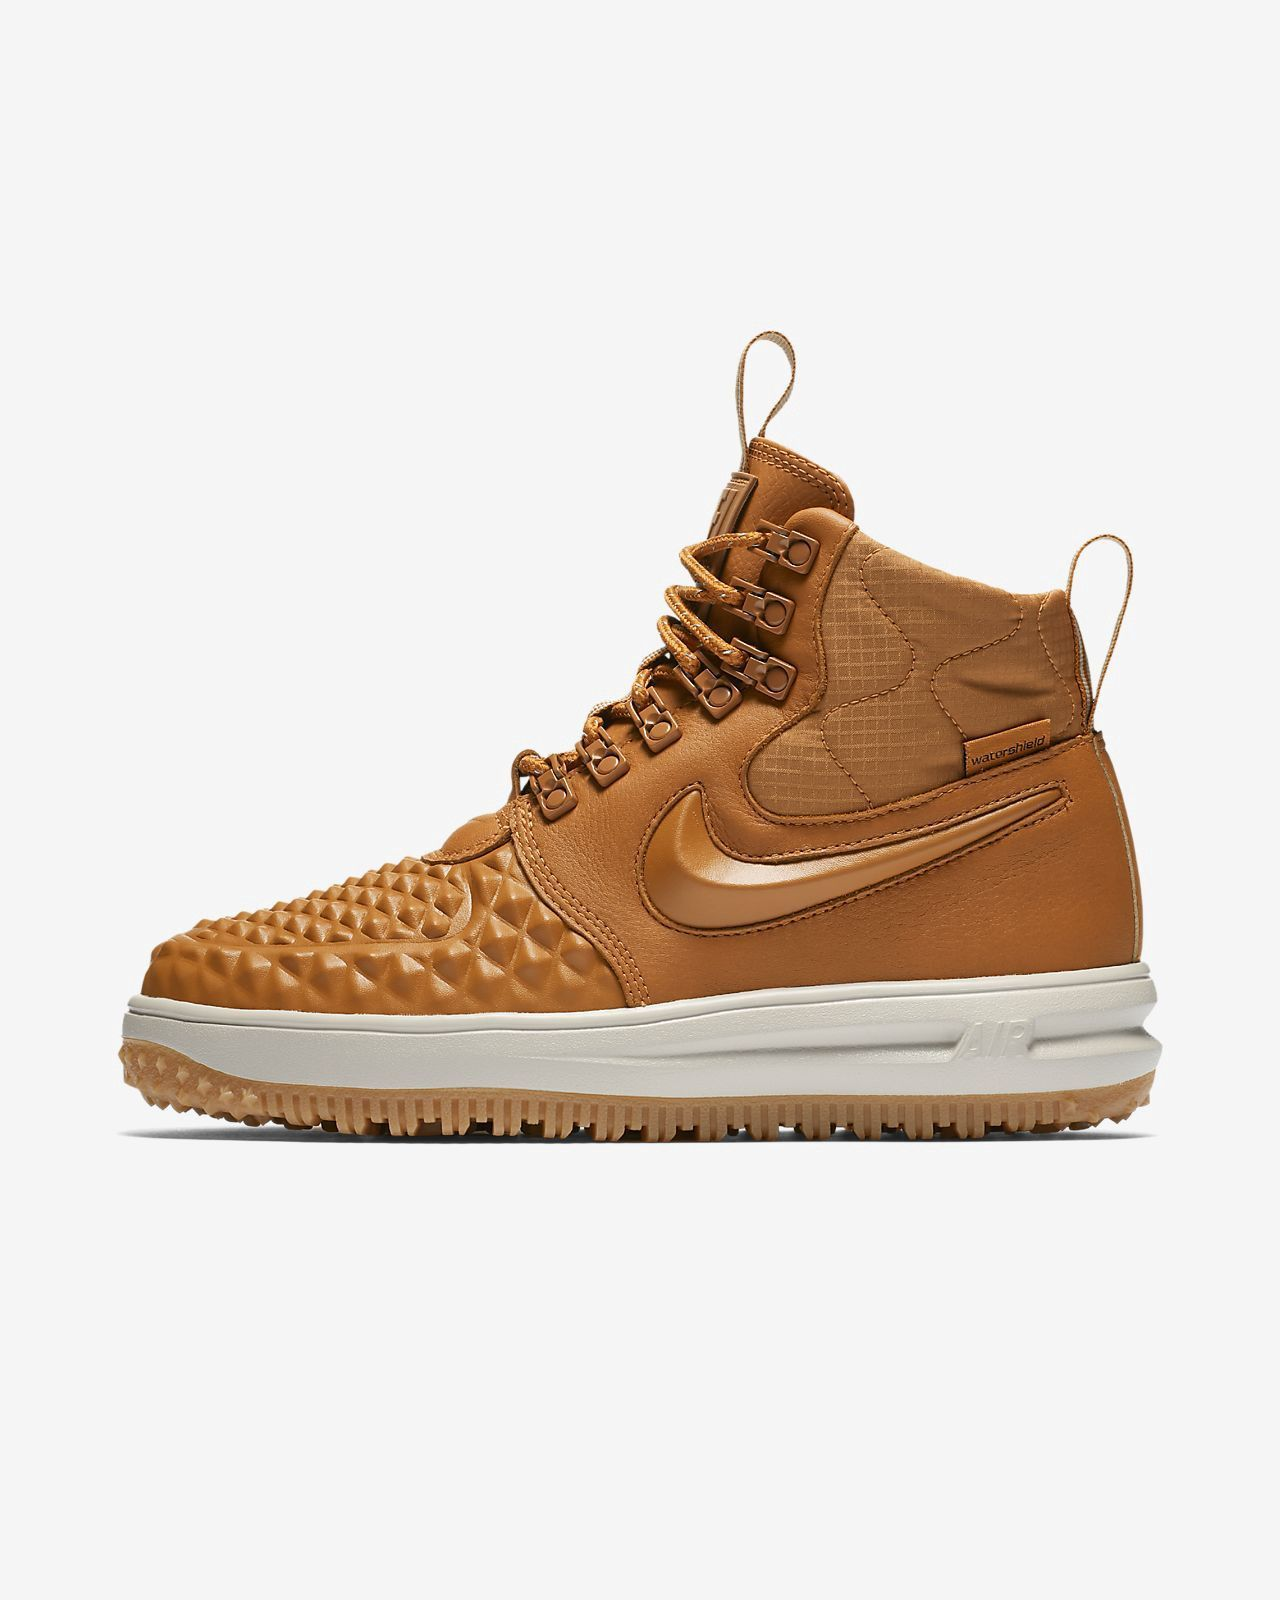 Nike Lunar Force 1 Duckboot  17 Women s Boot - 6.5  7276f21e5